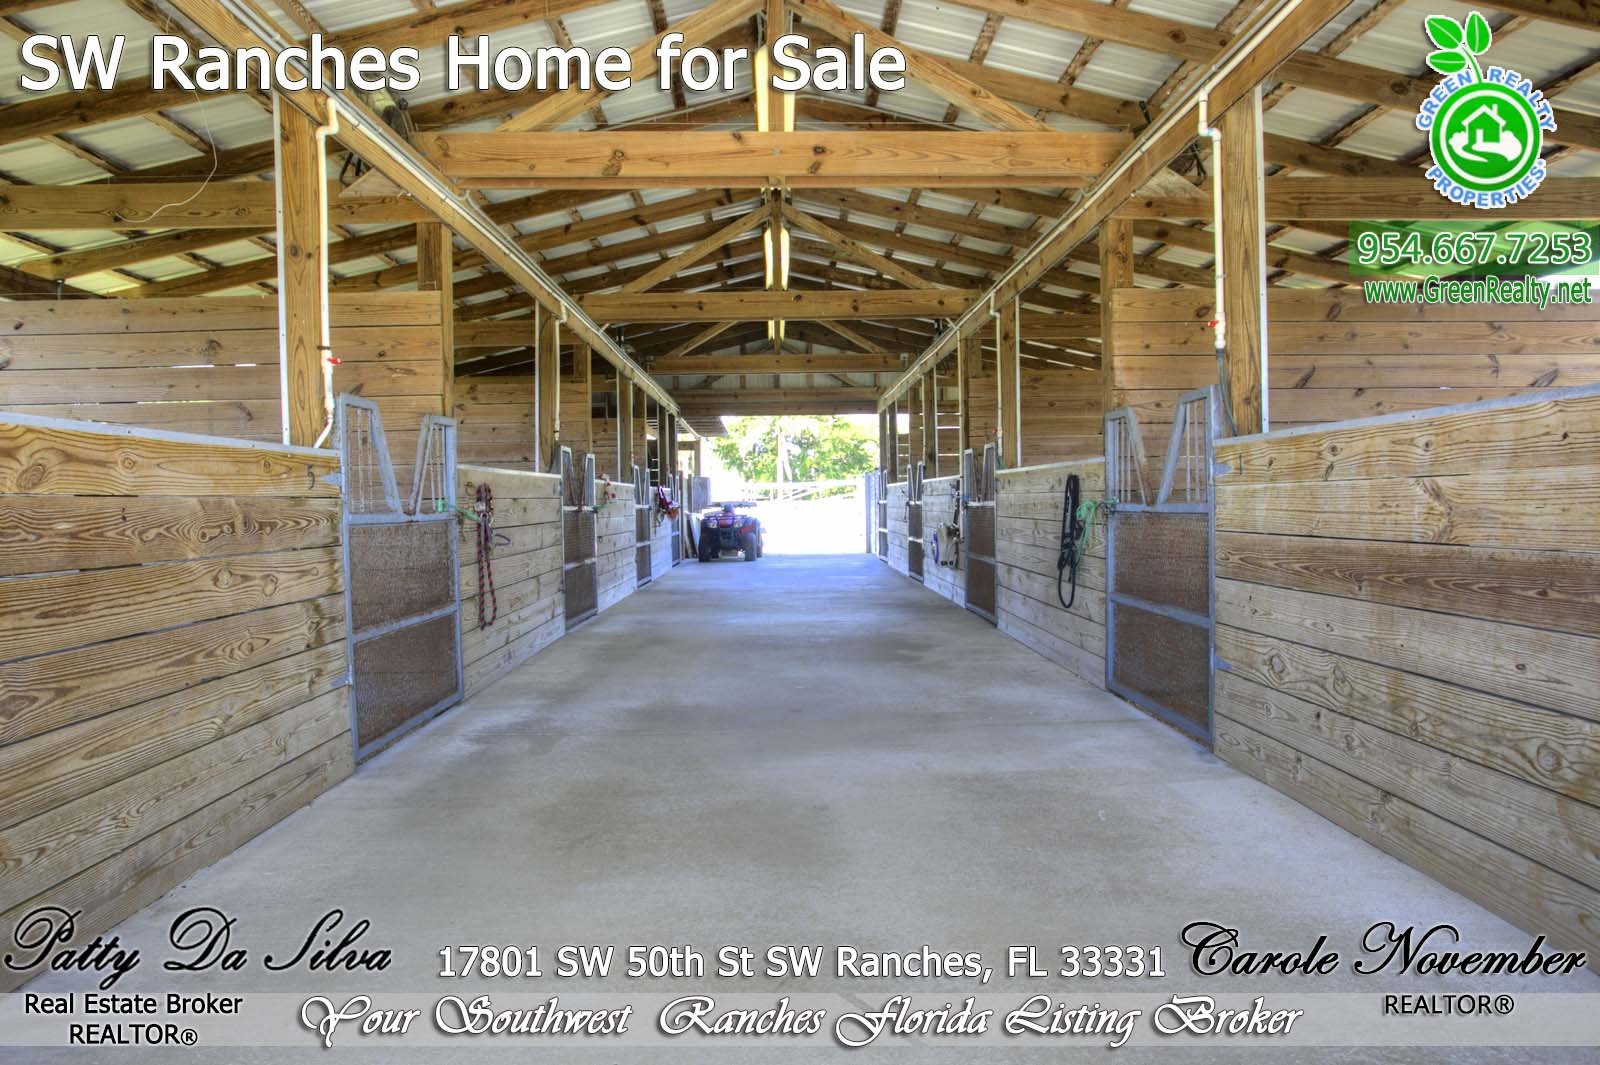 44 Equestrian Southwest Ranches Homes (1)